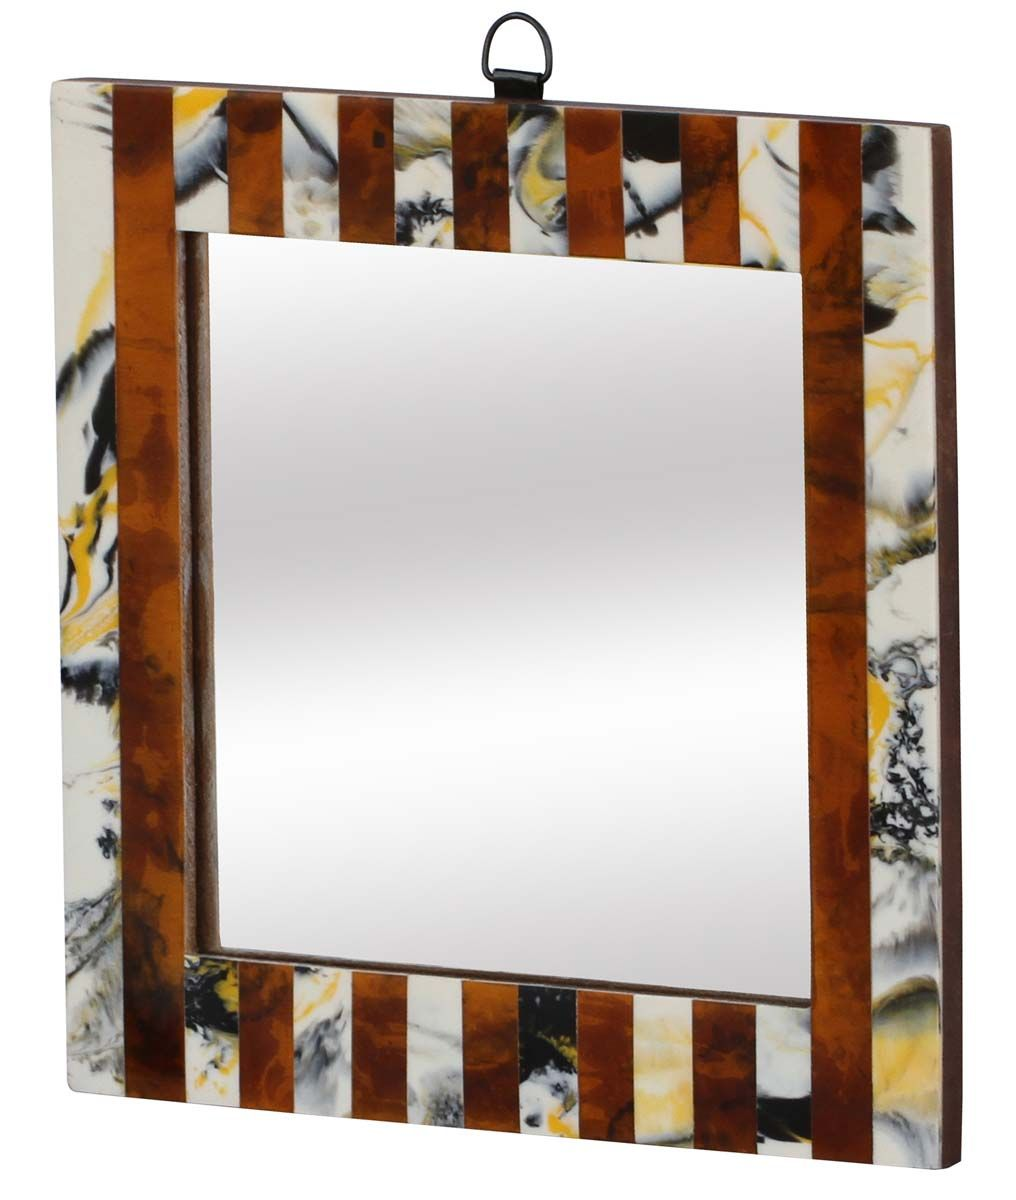 Bulk Wholesale Handmade Rectangle Shape Wall Mounted Mirror In Compressed Wood Decorated With Striped Pattern Abstr Wall Mounted Mirror Mirror Decor Mirror